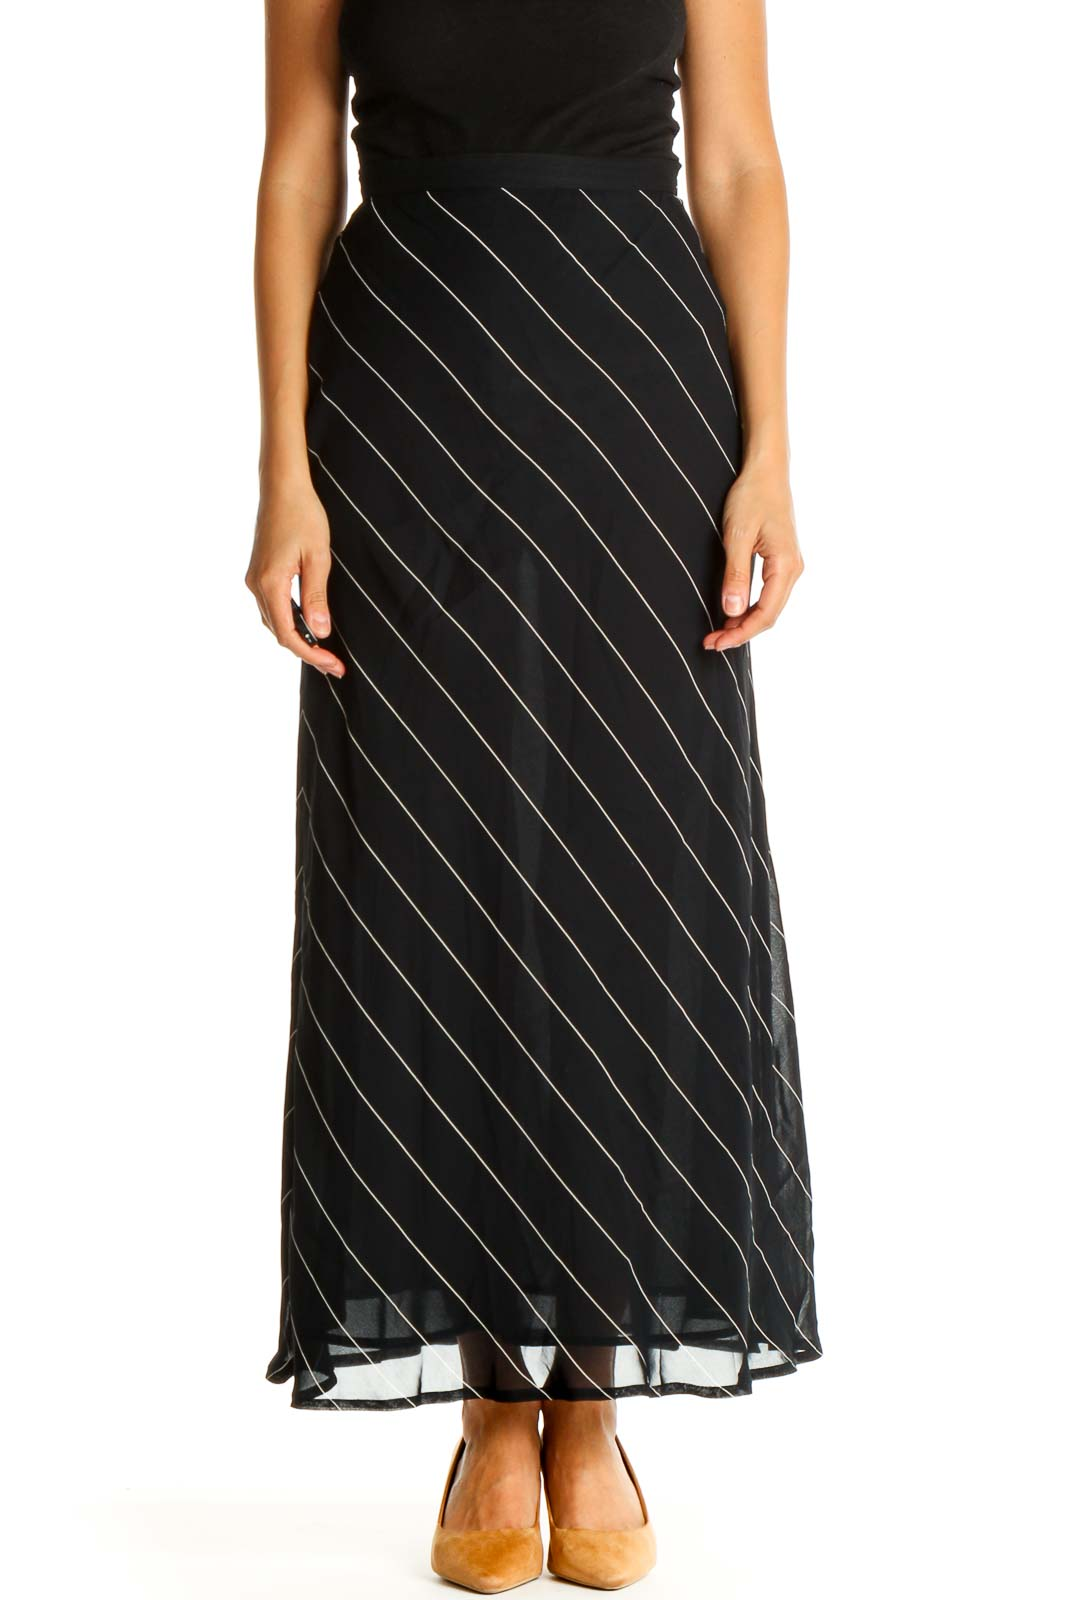 Blue Striped Holiday A-Line Skirt Front